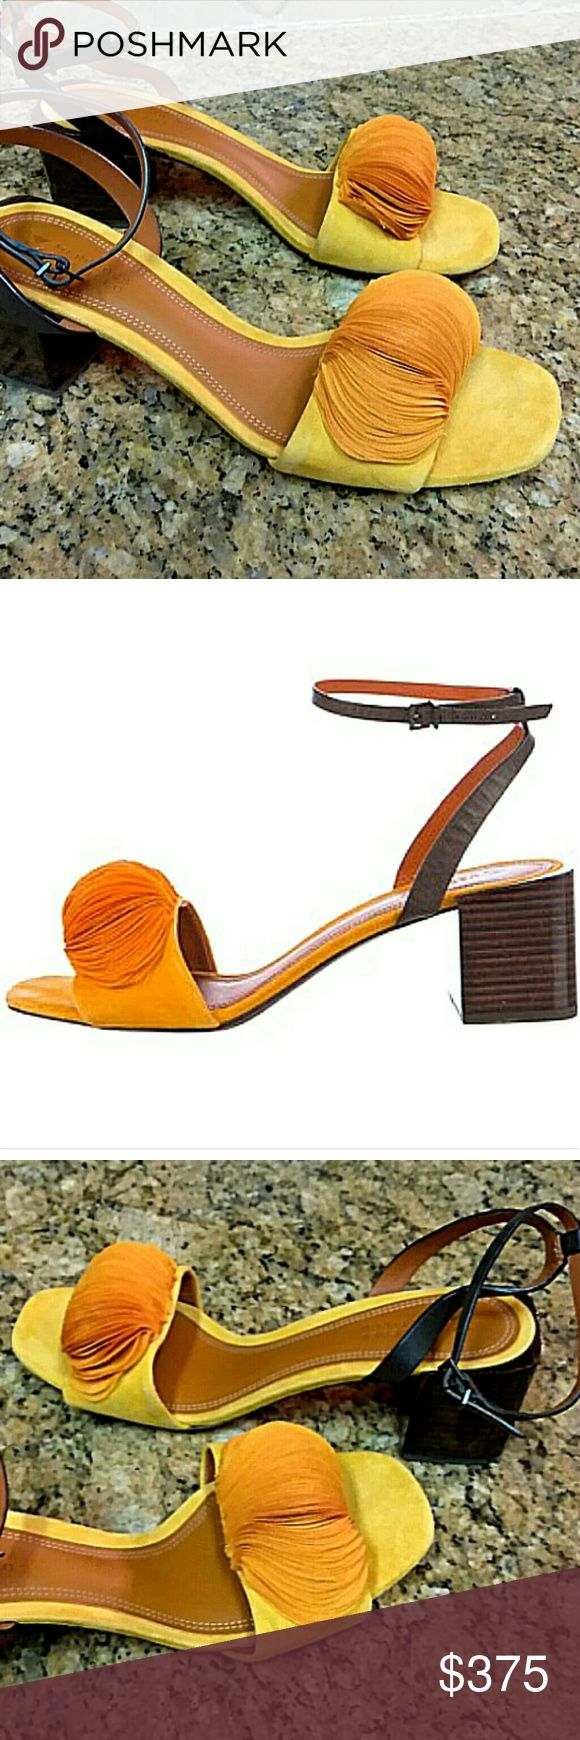 Mercedes Castillo 2017 Olenna sandals All purchase is shipped with a gift   Brand new mustard yellow elegant yet comfortable sandals. True to size  Retails for $475 no low blow offers pls. No box or dust bag but will be shipped with a dust bag in a box  Checkout other listings featured in this post MERCEDES CASTILLO Shoes Sandals